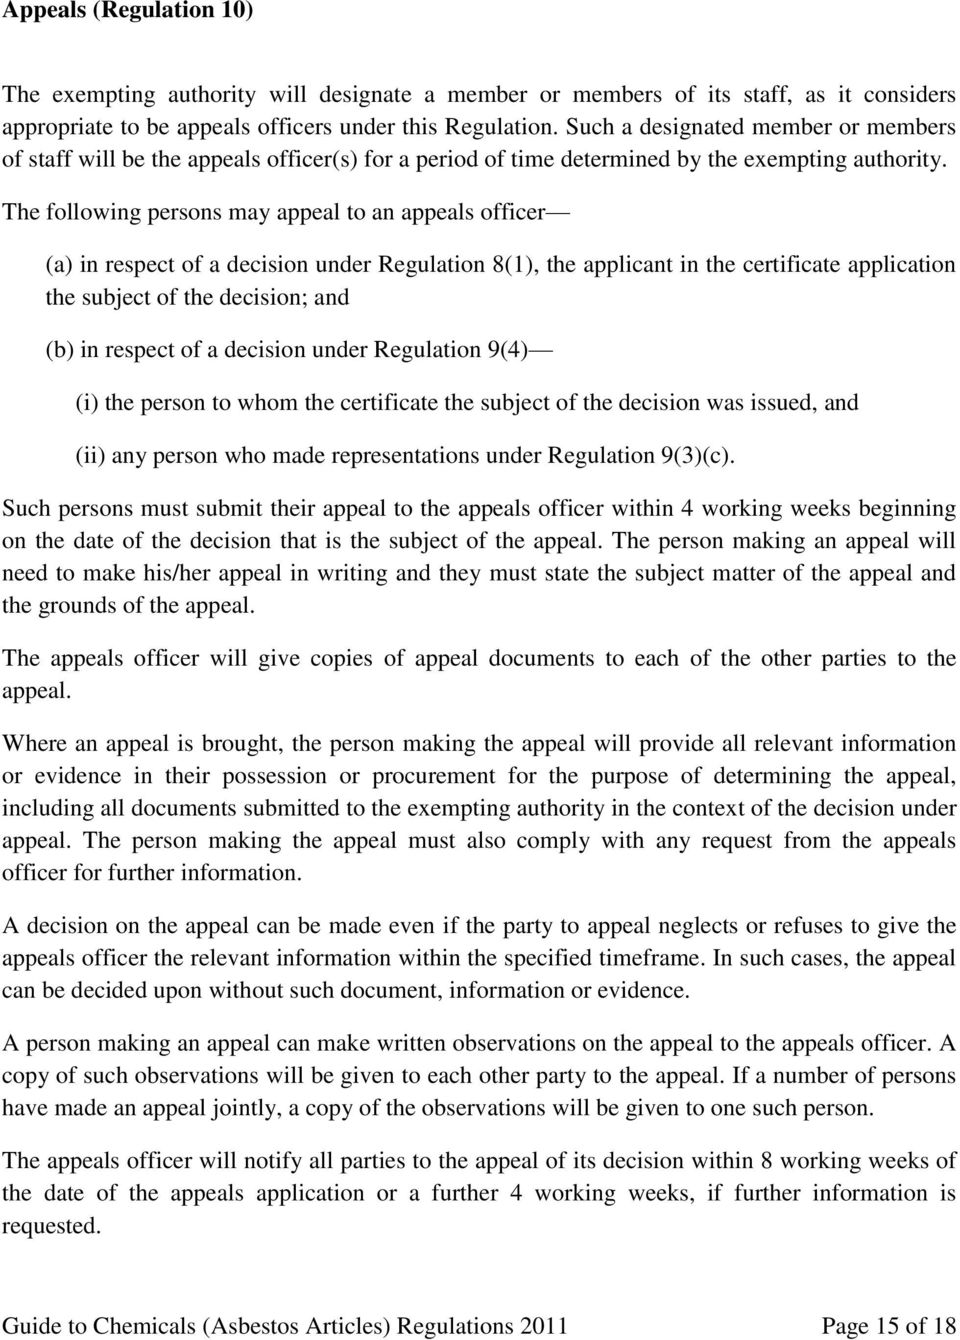 The following persons may appeal to an appeals officer (a) in respect of a decision under Regulation 8(1), the applicant in the certificate application the subject of the decision; and (b) in respect